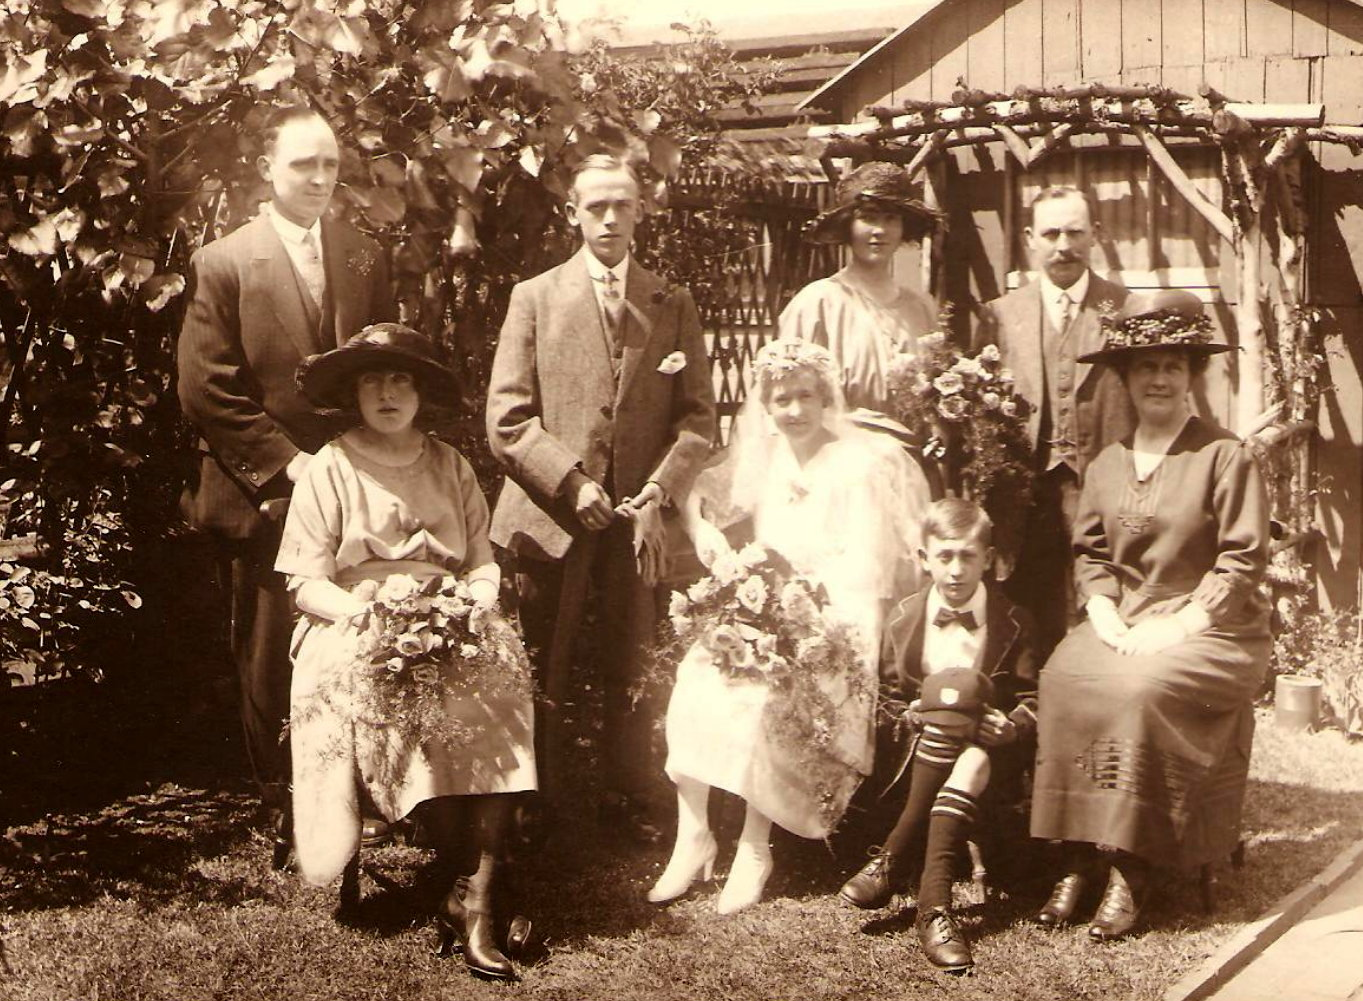 The wedding of James and Hilda Platt